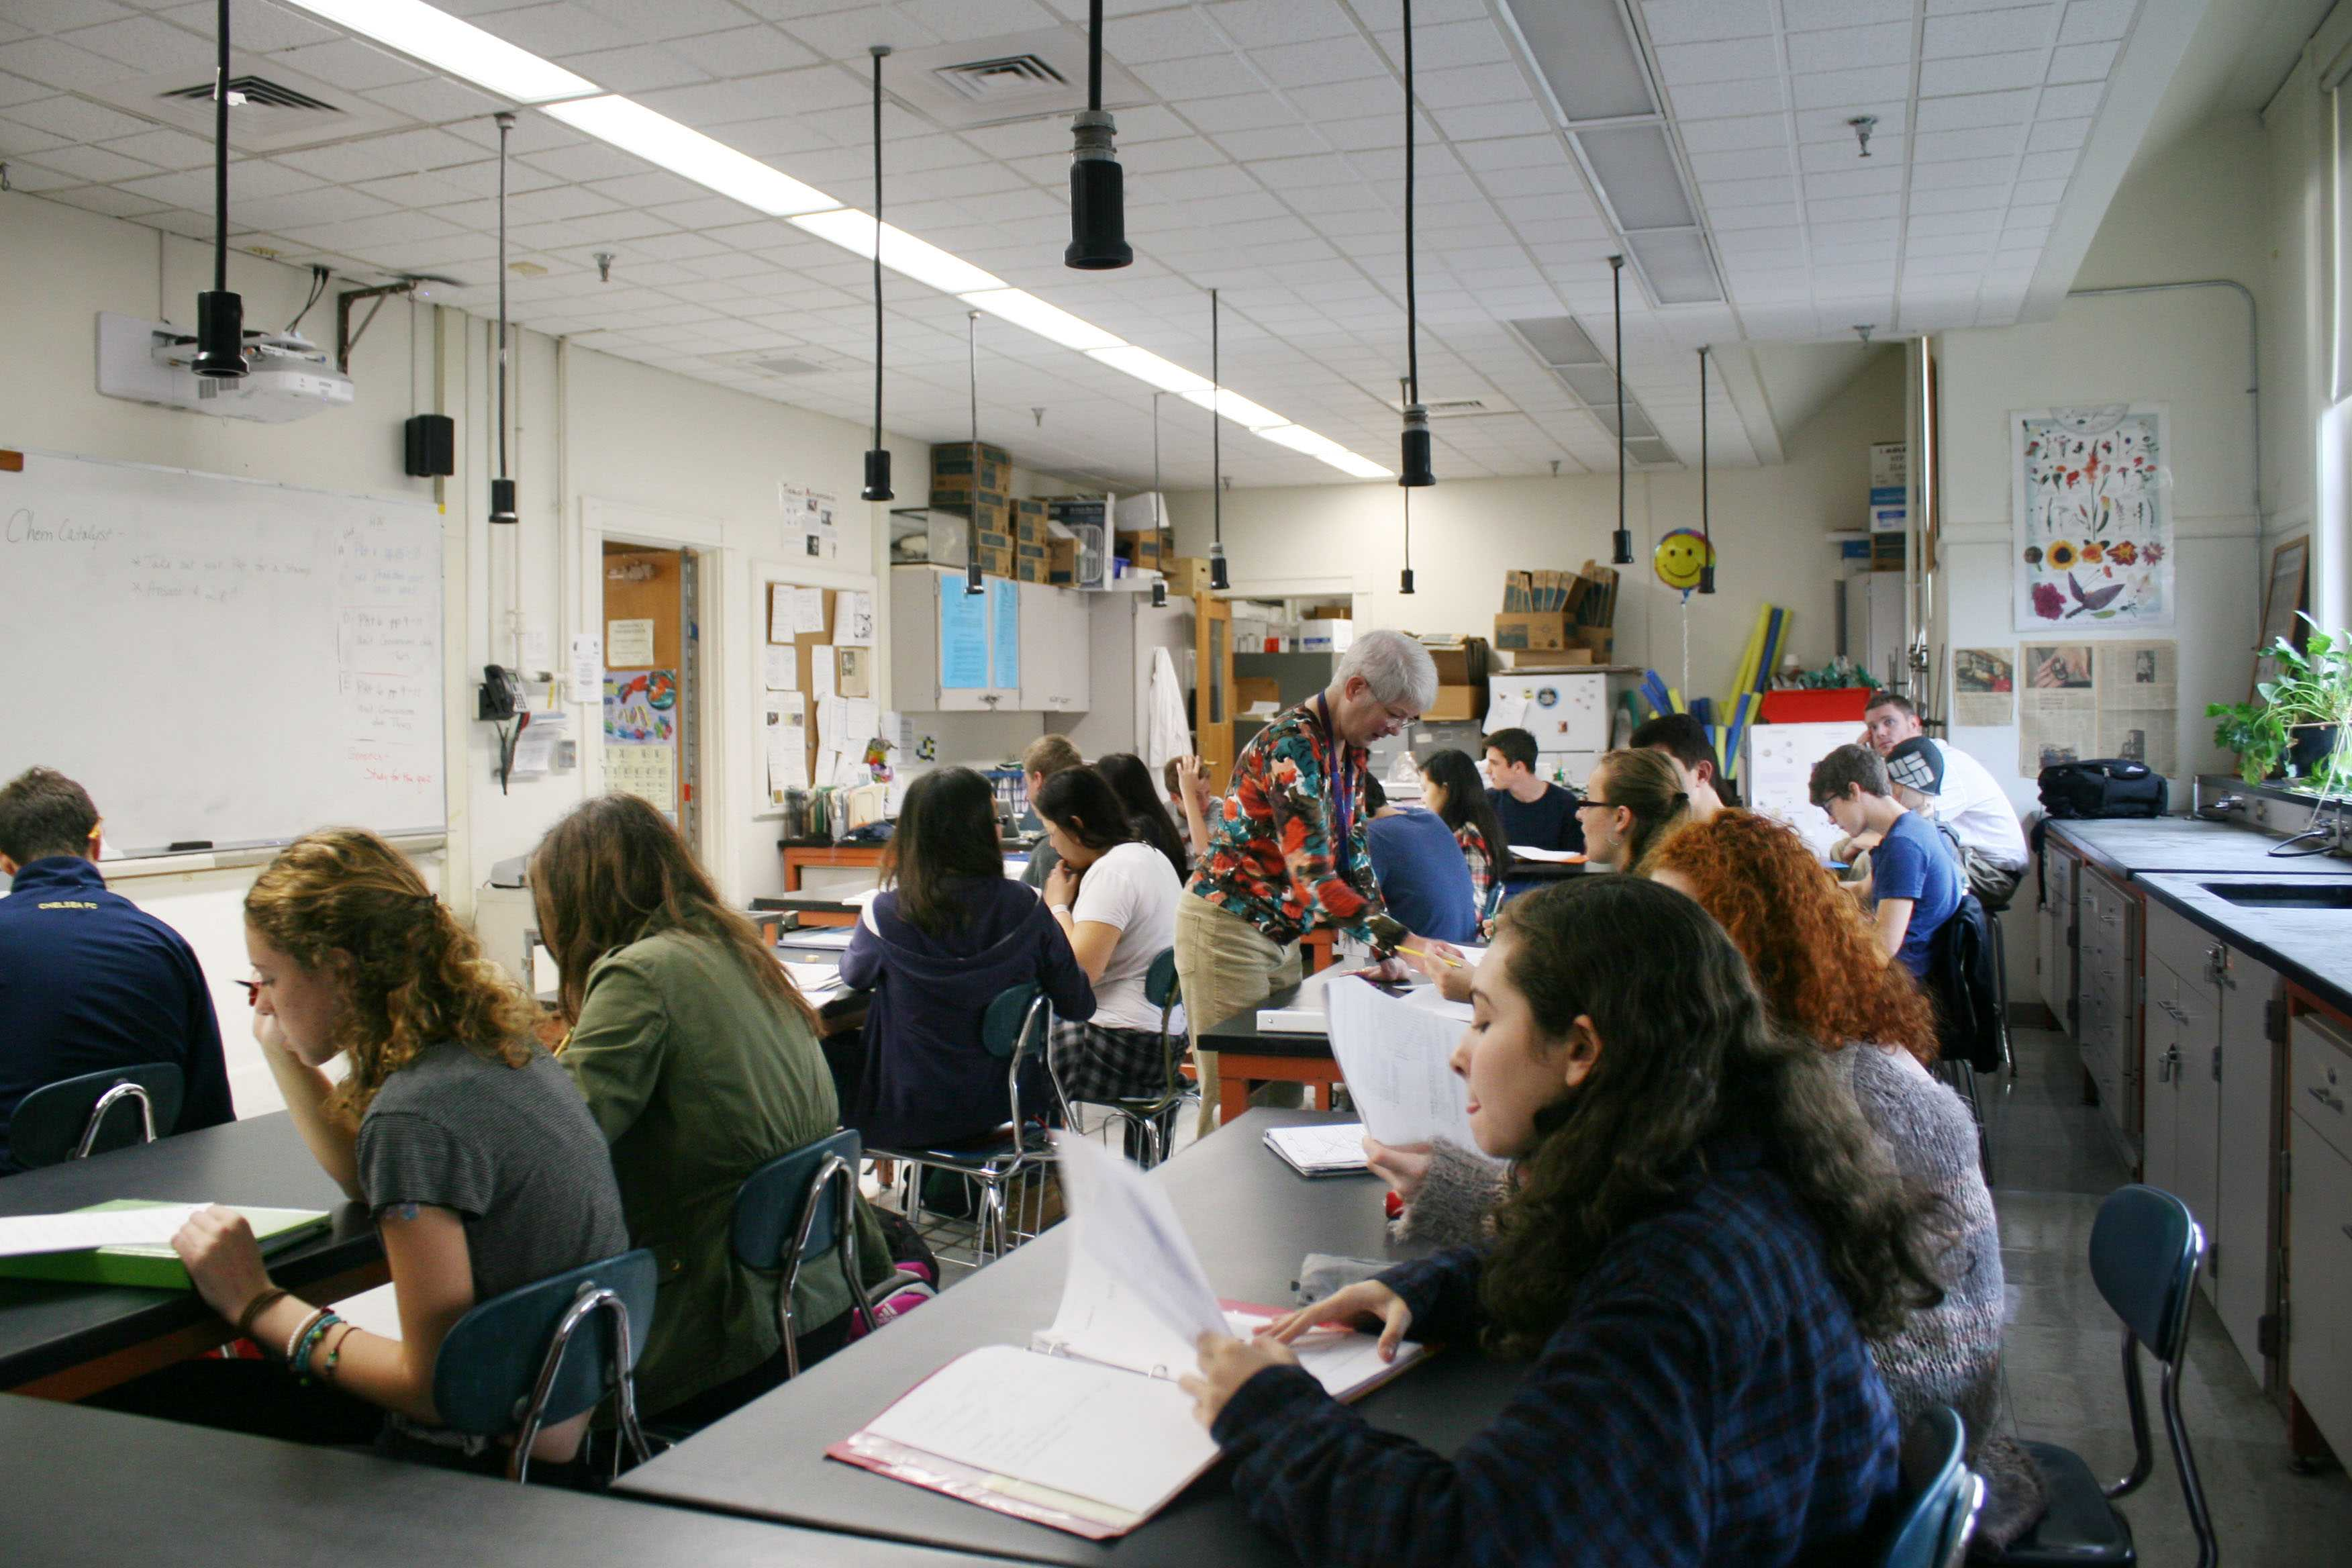 A large sophomore chemistry class. Students may not be heard or get as much individual attention in larger classes.